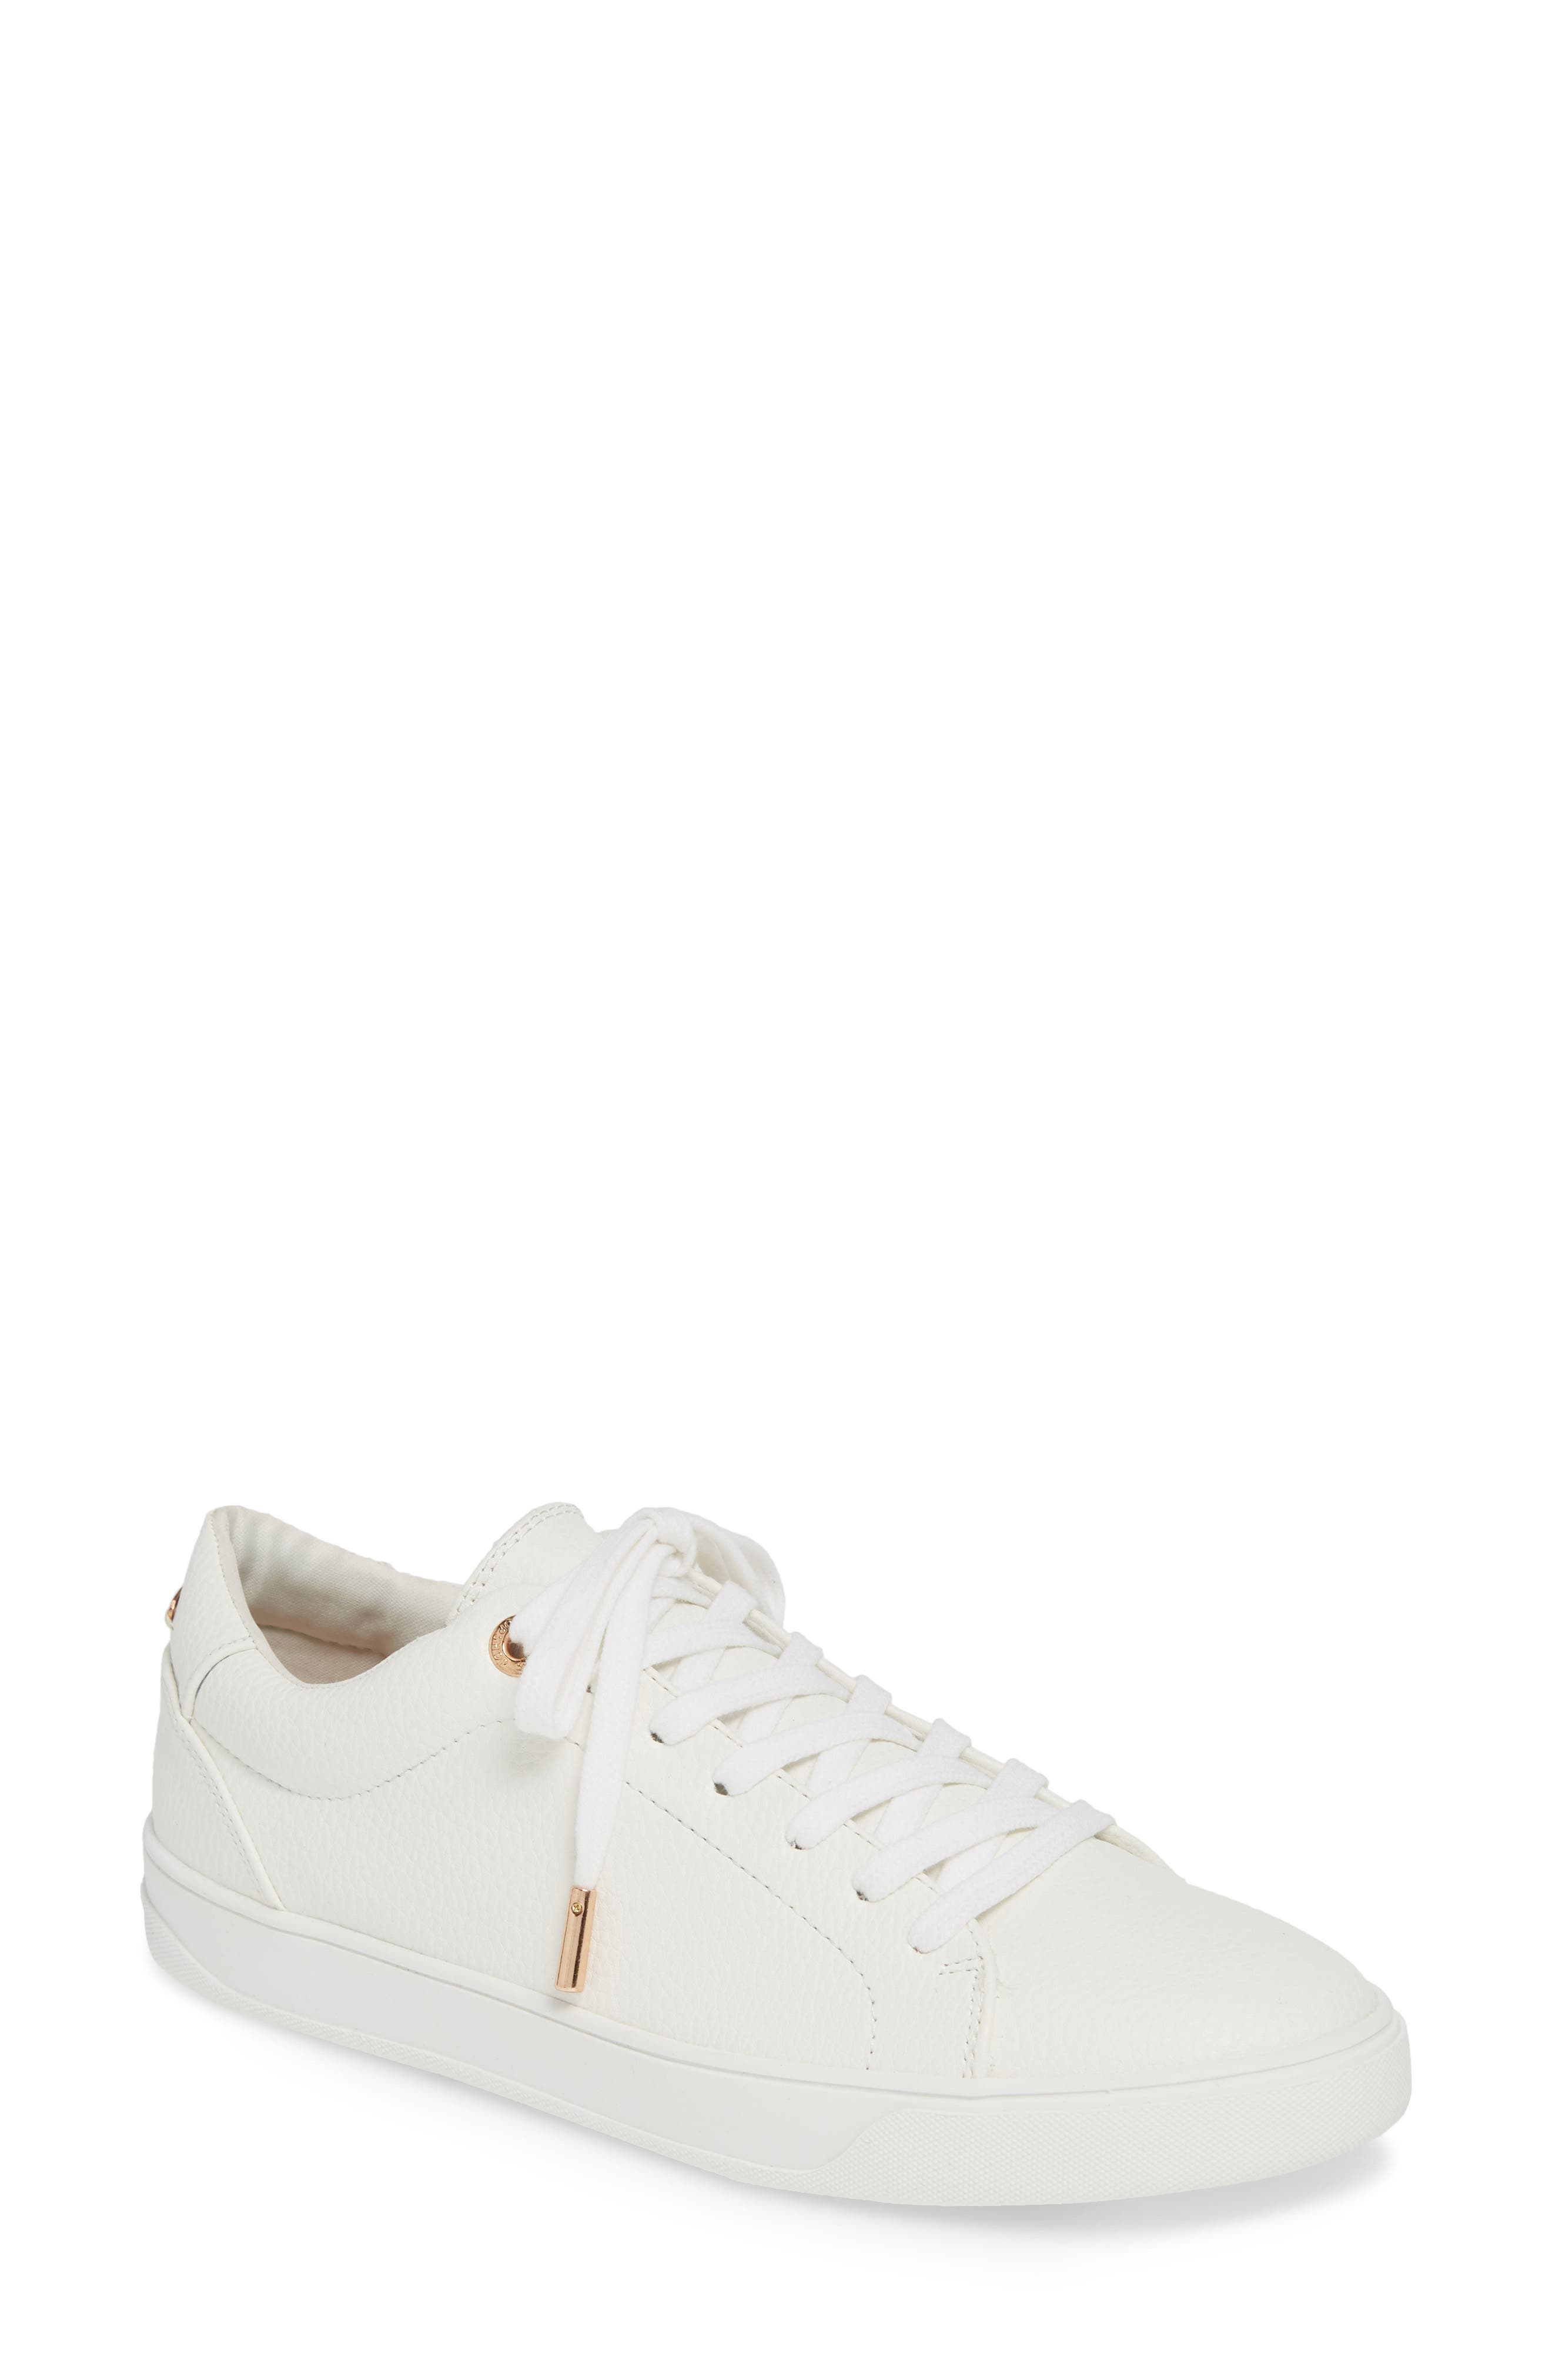 Curly Low Top Sneaker by Topshop